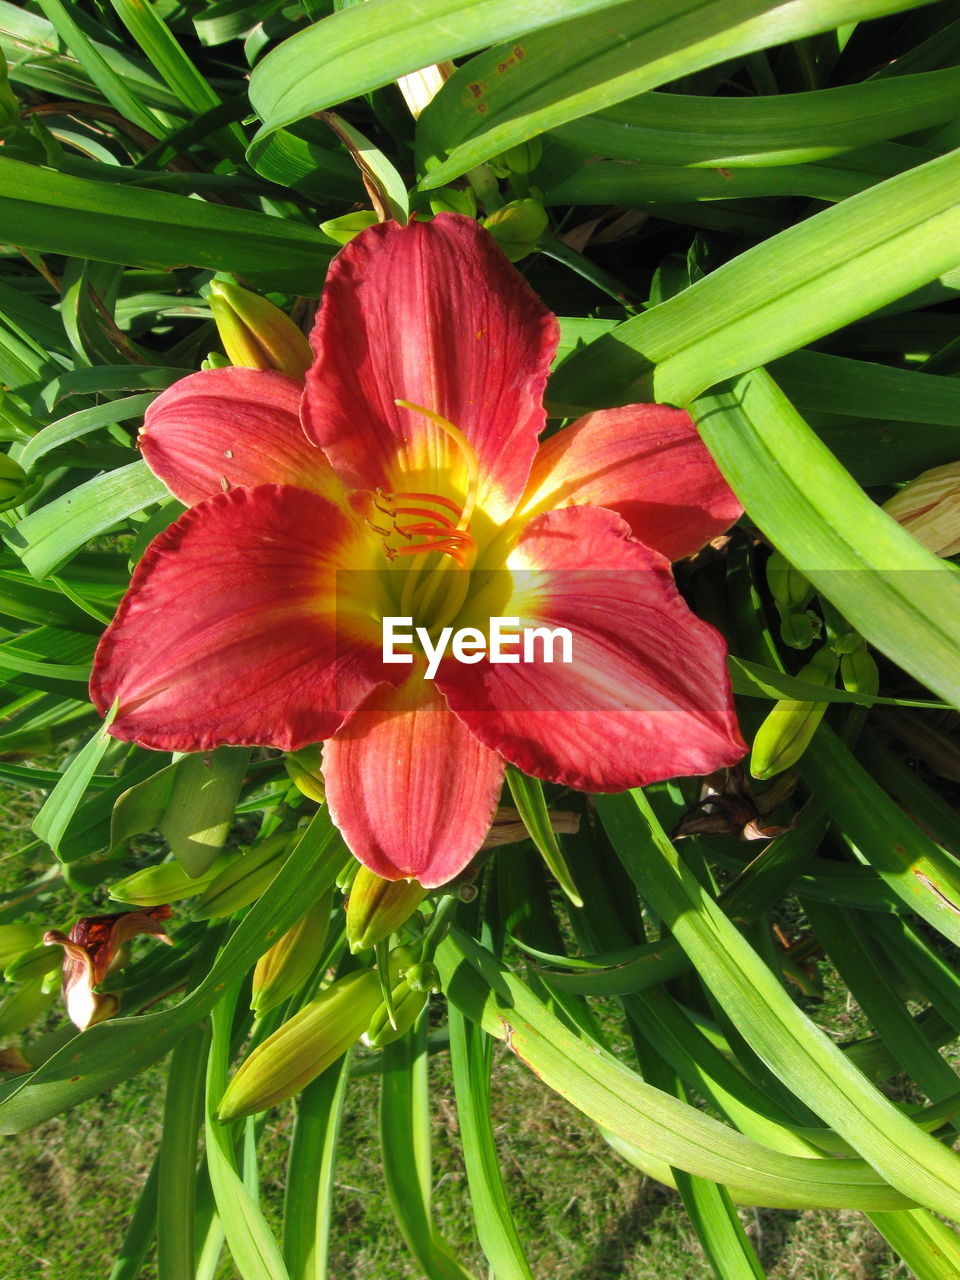 flower, growth, petal, nature, plant, beauty in nature, no people, flower head, freshness, red, outdoors, fragility, blooming, day lily, day, close-up